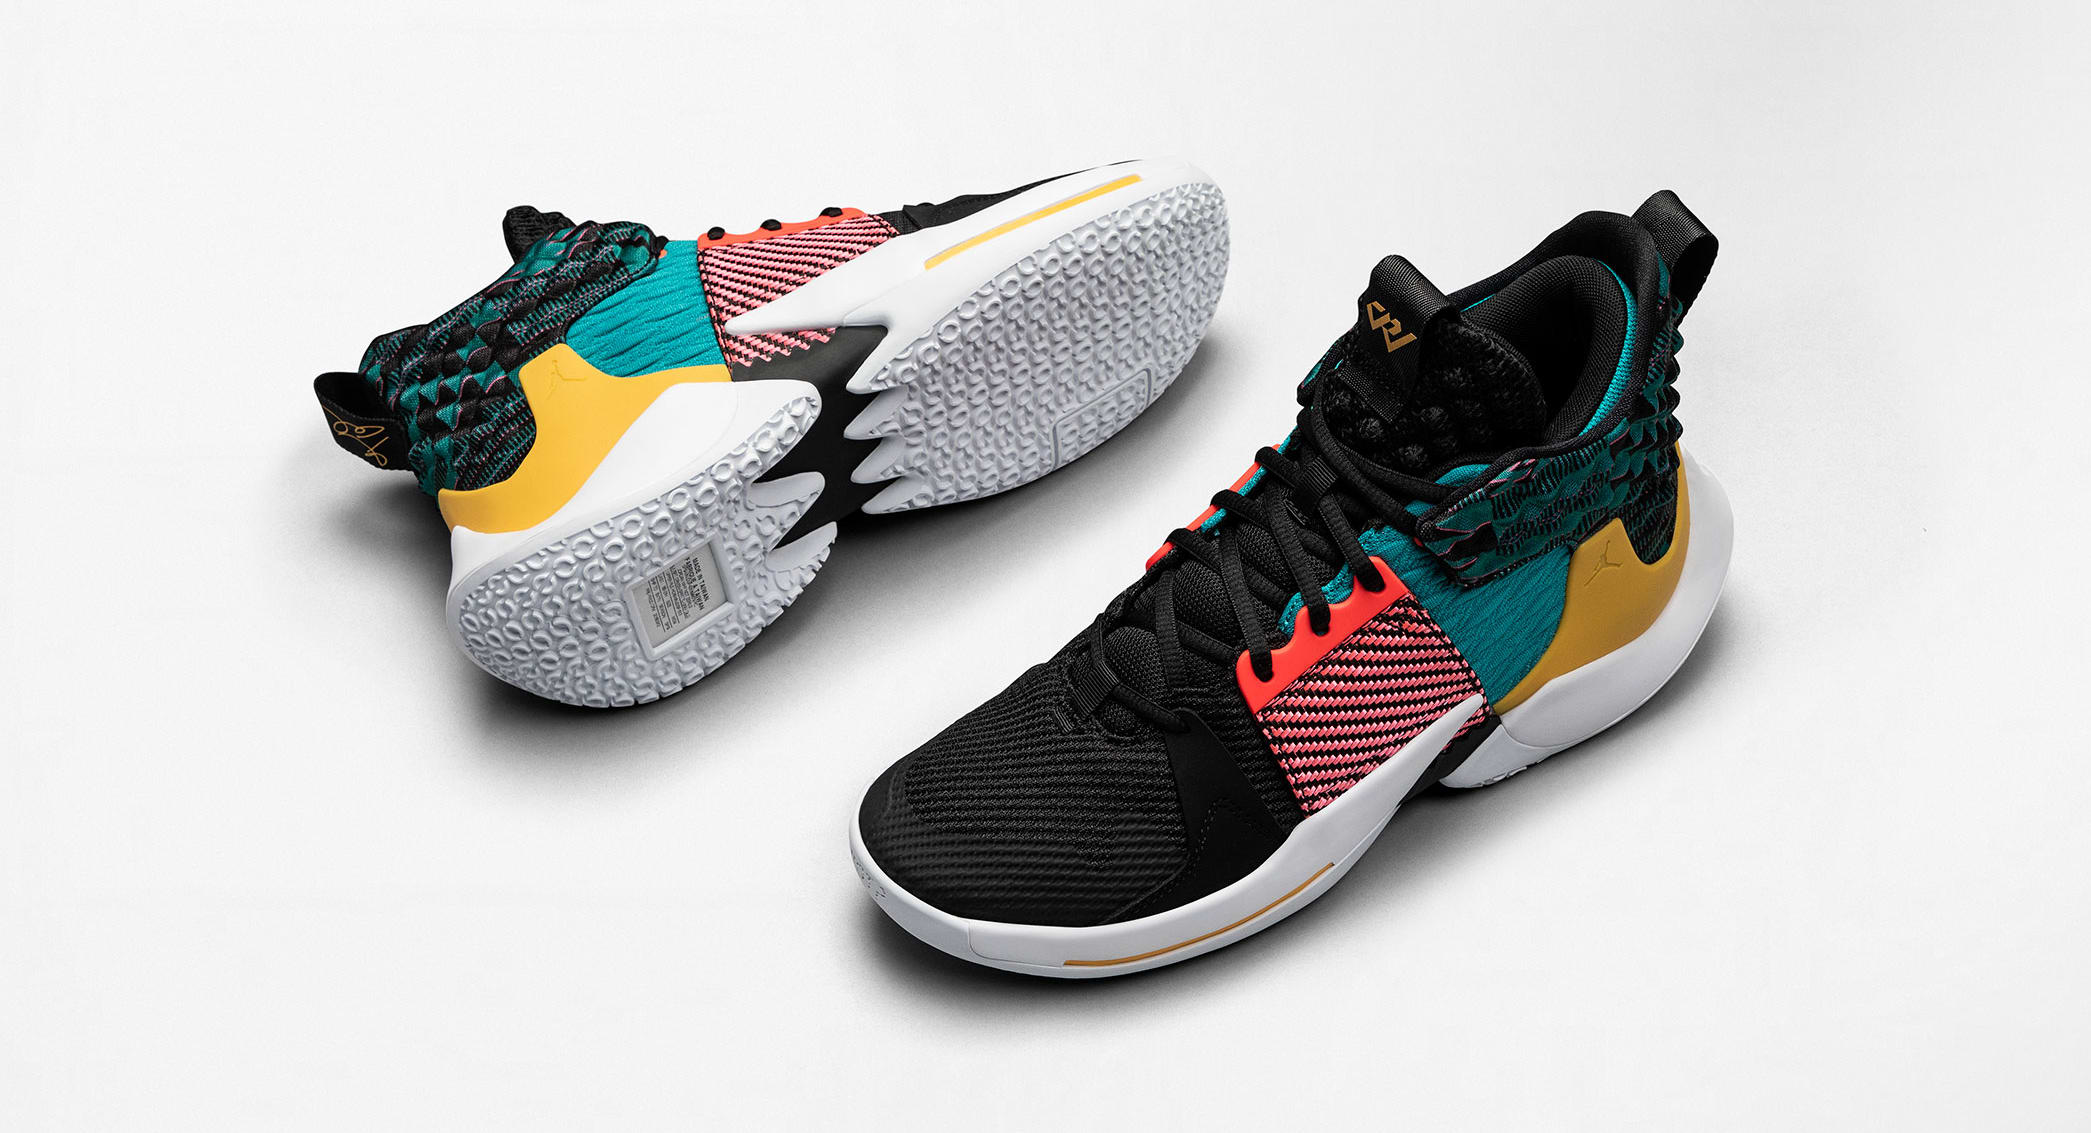 Nike BHM 2019 Jordan Why Not Zer0.2